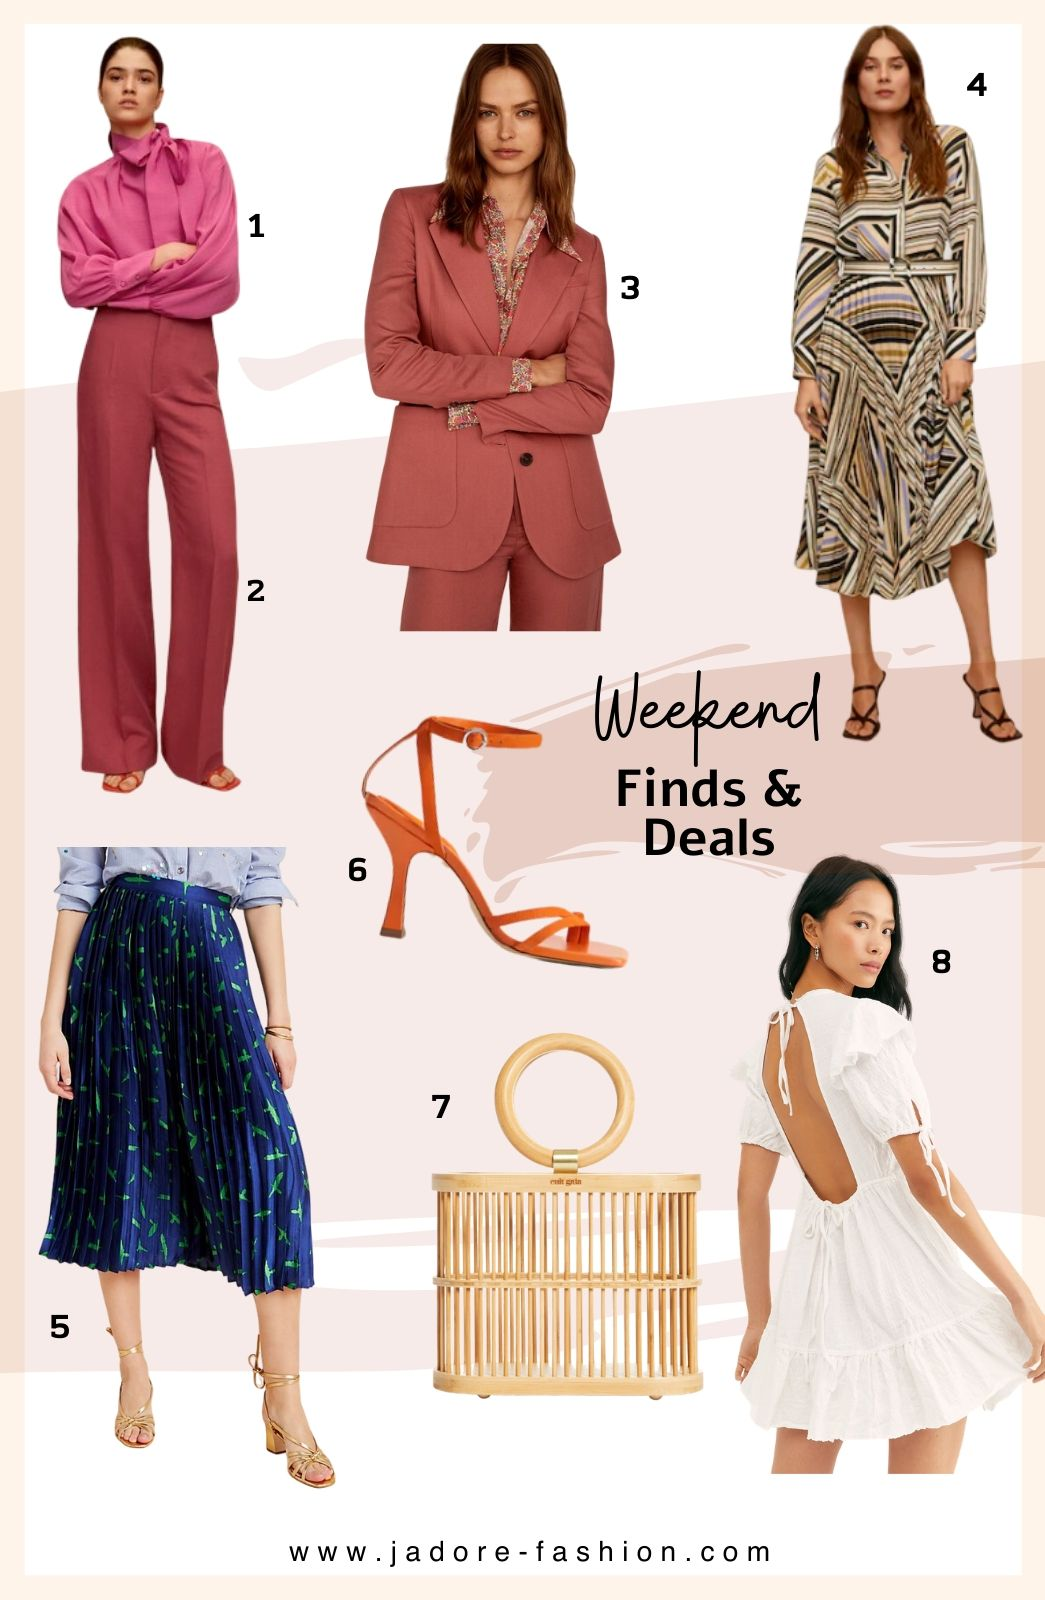 stella-adewunmi-of-jadore-fashion-blog-shares-weekend-finds-and-deals-spring